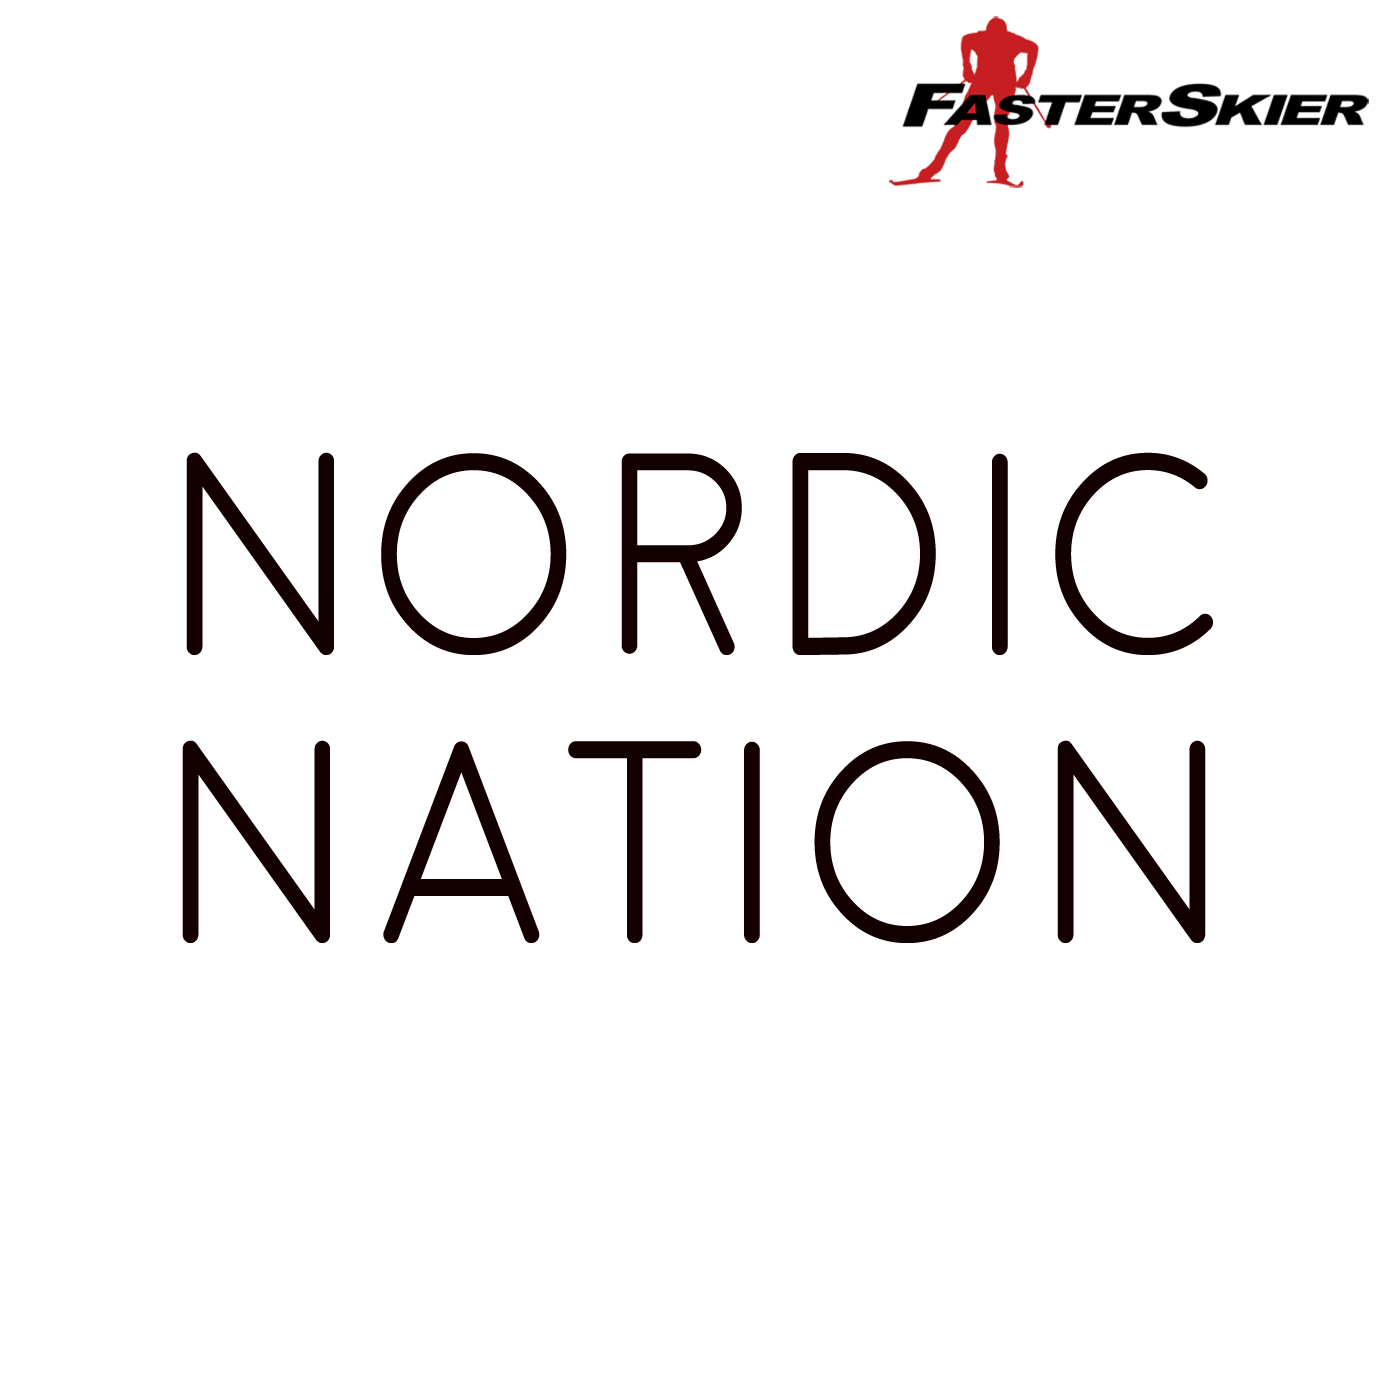 https://fasterskier.com/wp-content/blogs.dir/1/files/2019/12/FS-podcast-NORDIC_NATION_2020-c.jpg